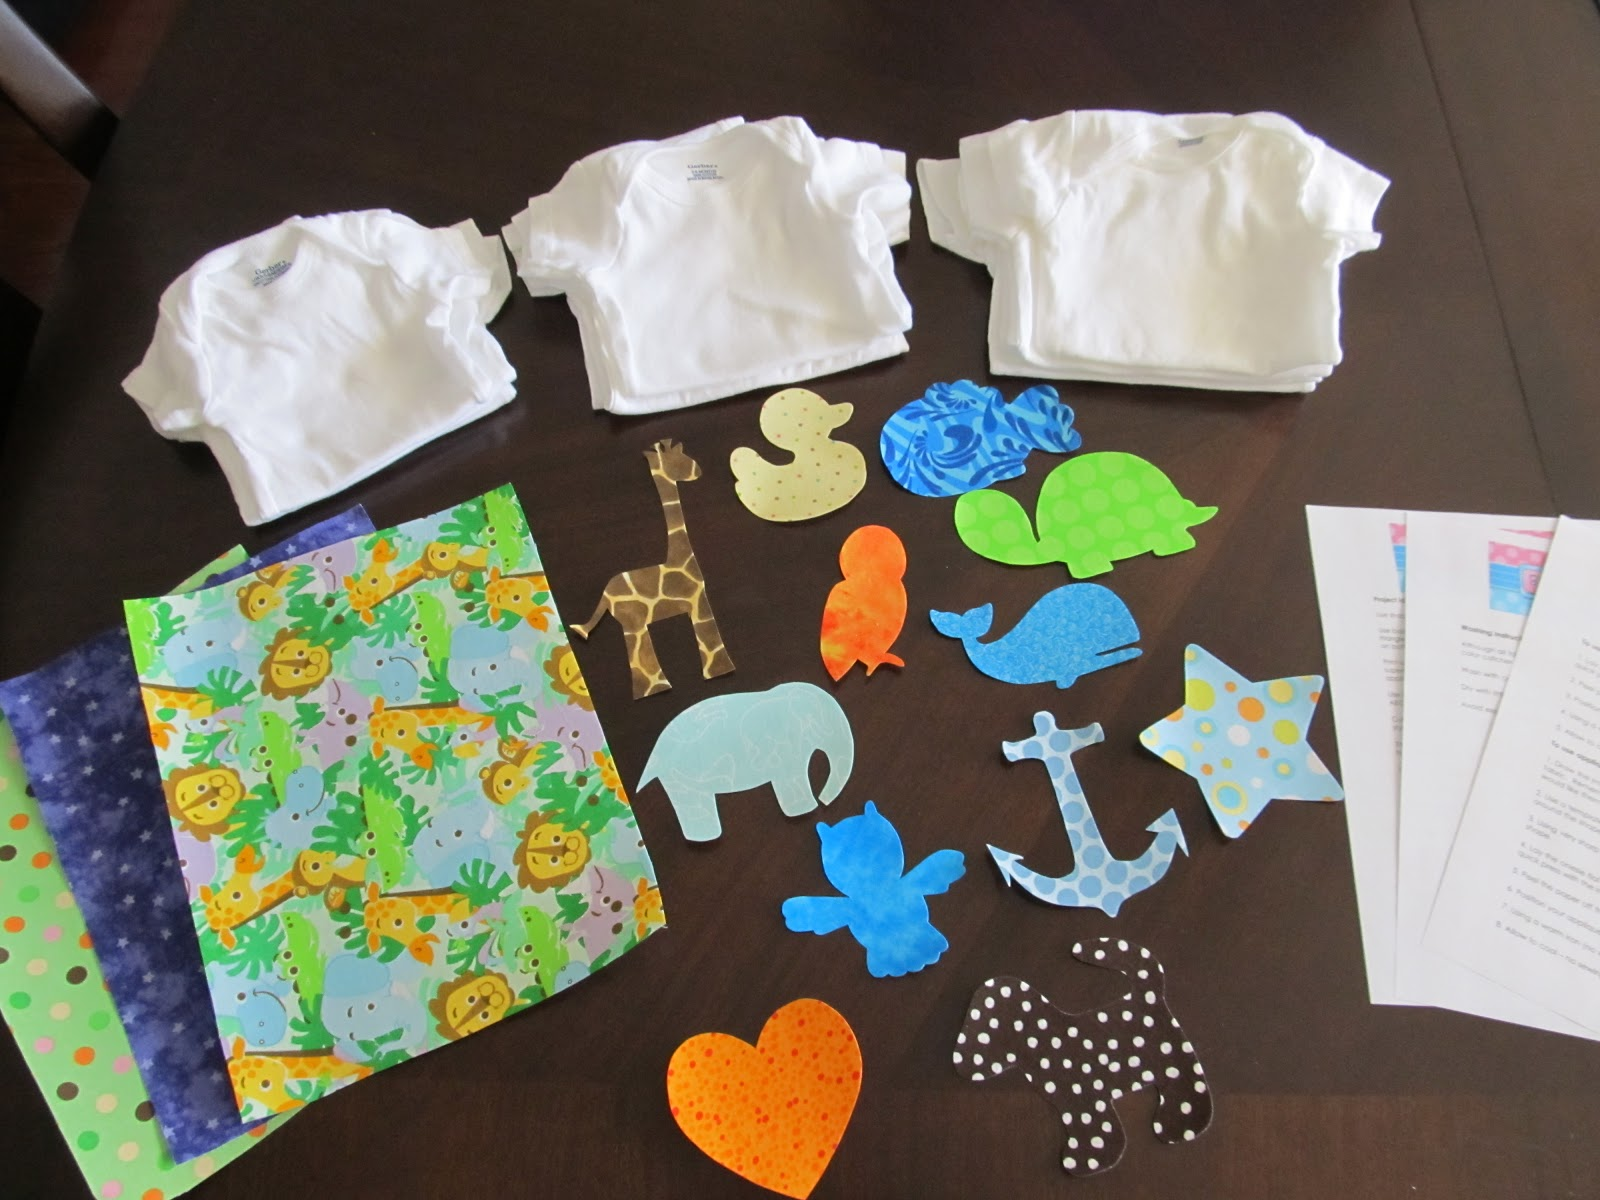 Binge Crafter: Baby Shower Craft - Onesie Making Kits with Iron-on